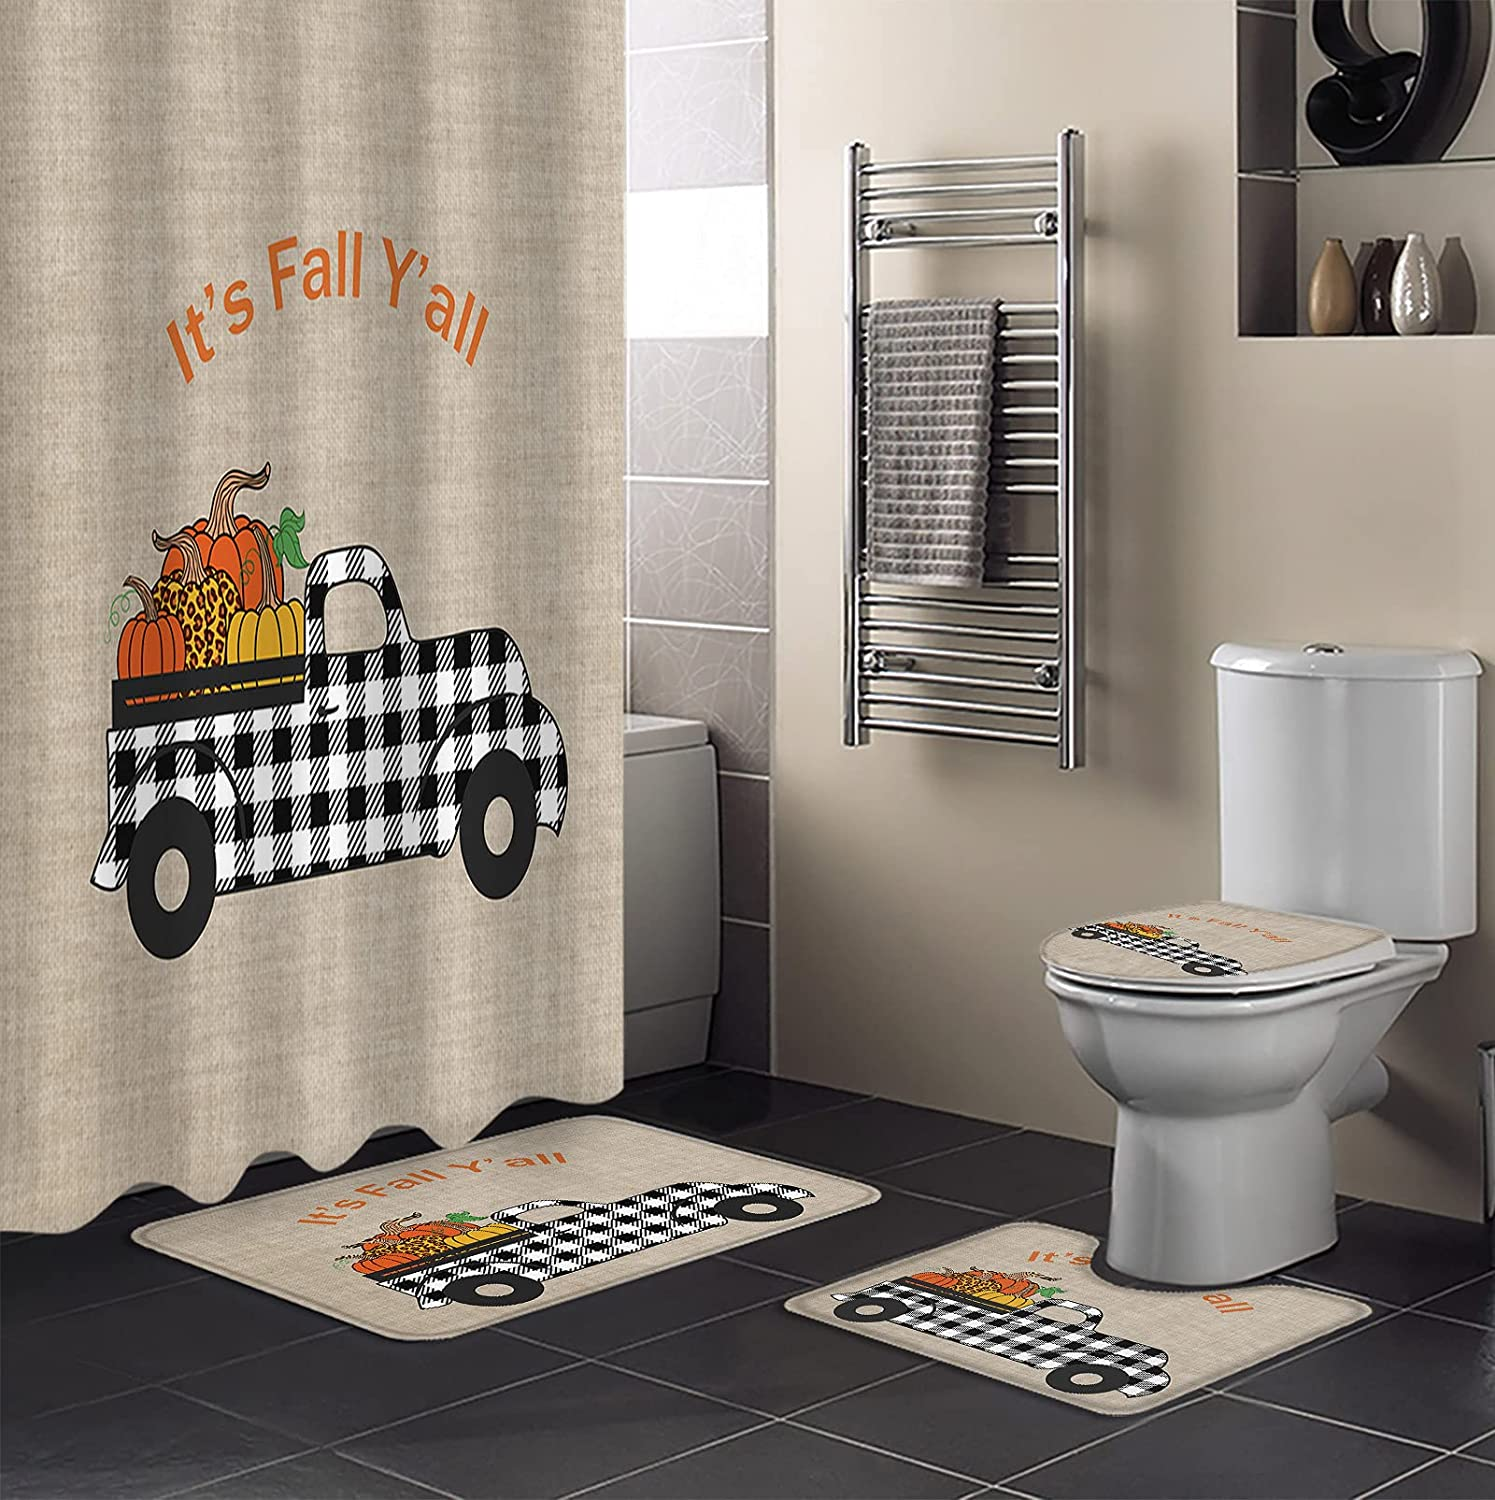 4 Max 83% OFF Piece Shower Curtain Sets It's Baltimore Mall Pump Leopard Fashion Fall Y'all